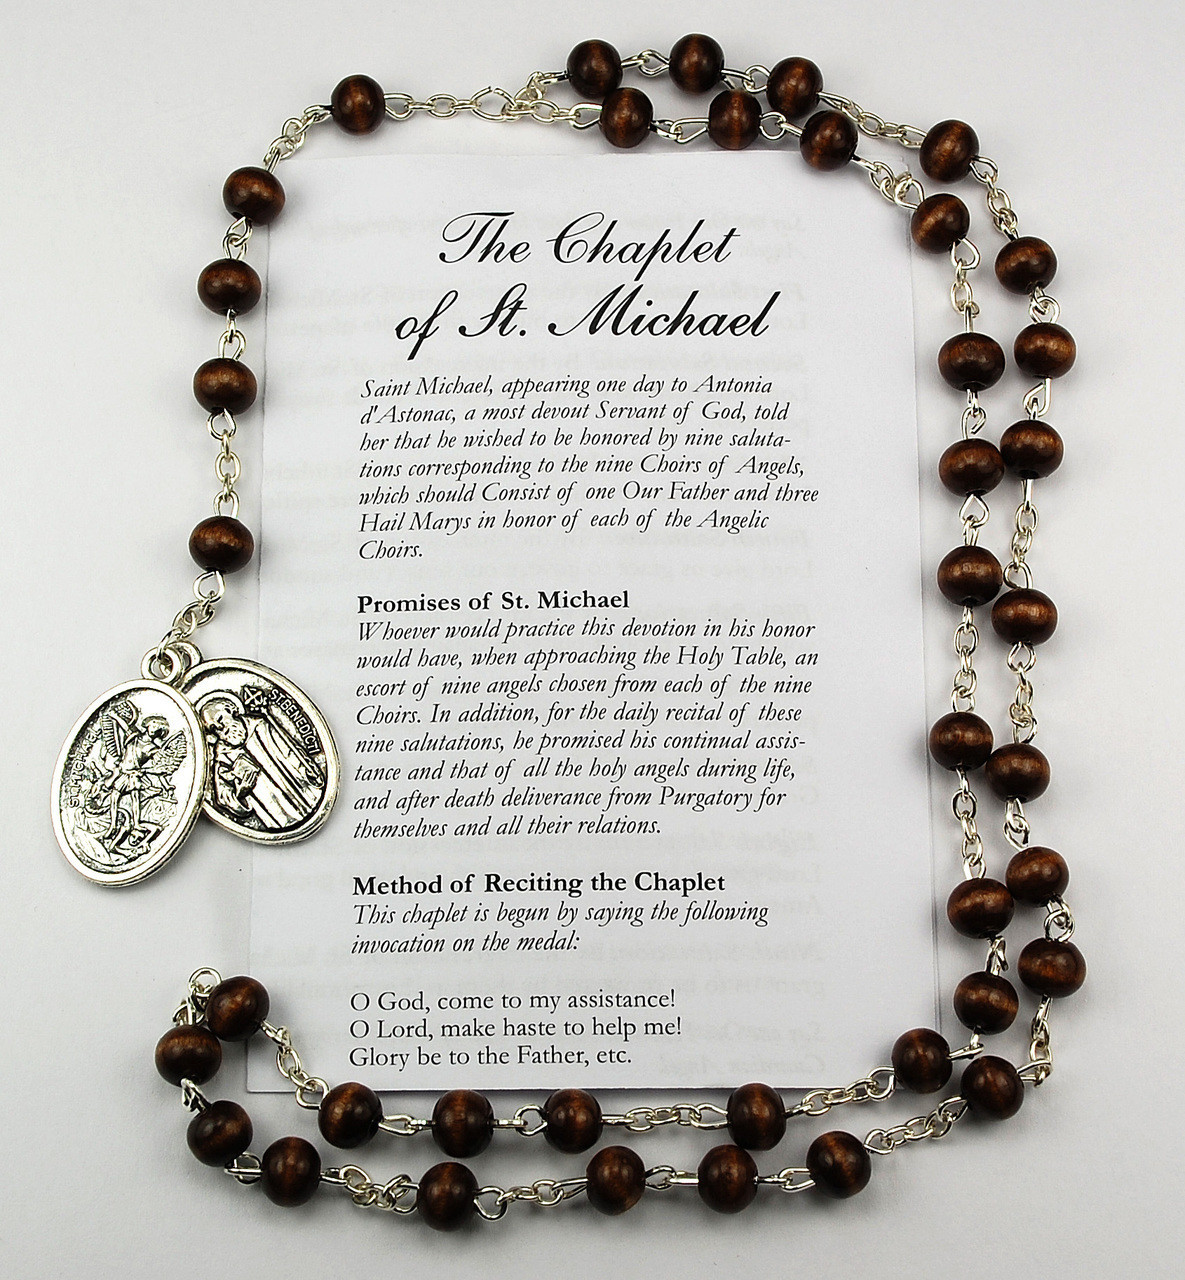 Chaplet of St. Michael